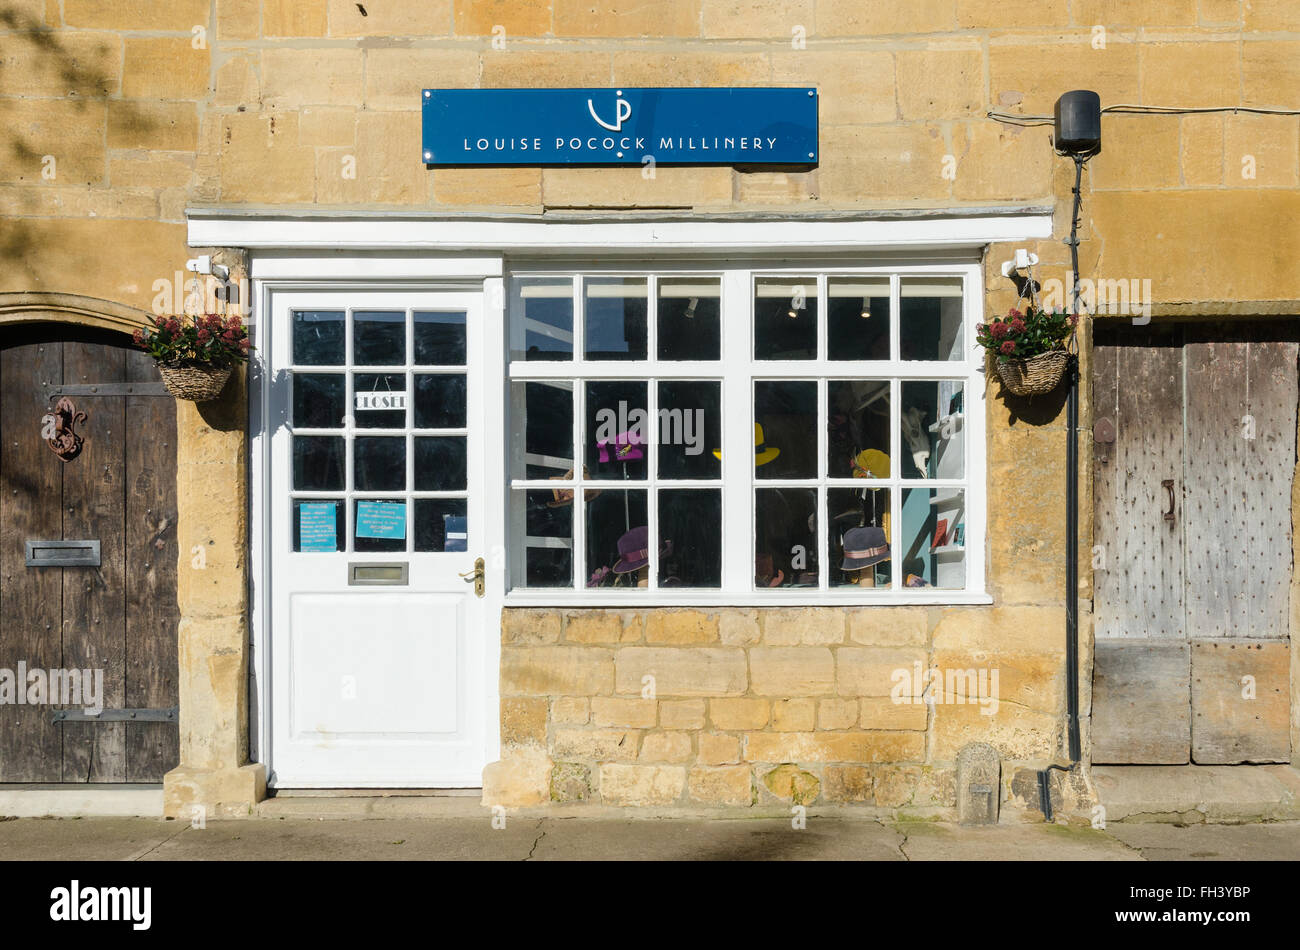 Louise Pocock Millinery hat shop in Chipping Campden, Cotswolds - Stock Image